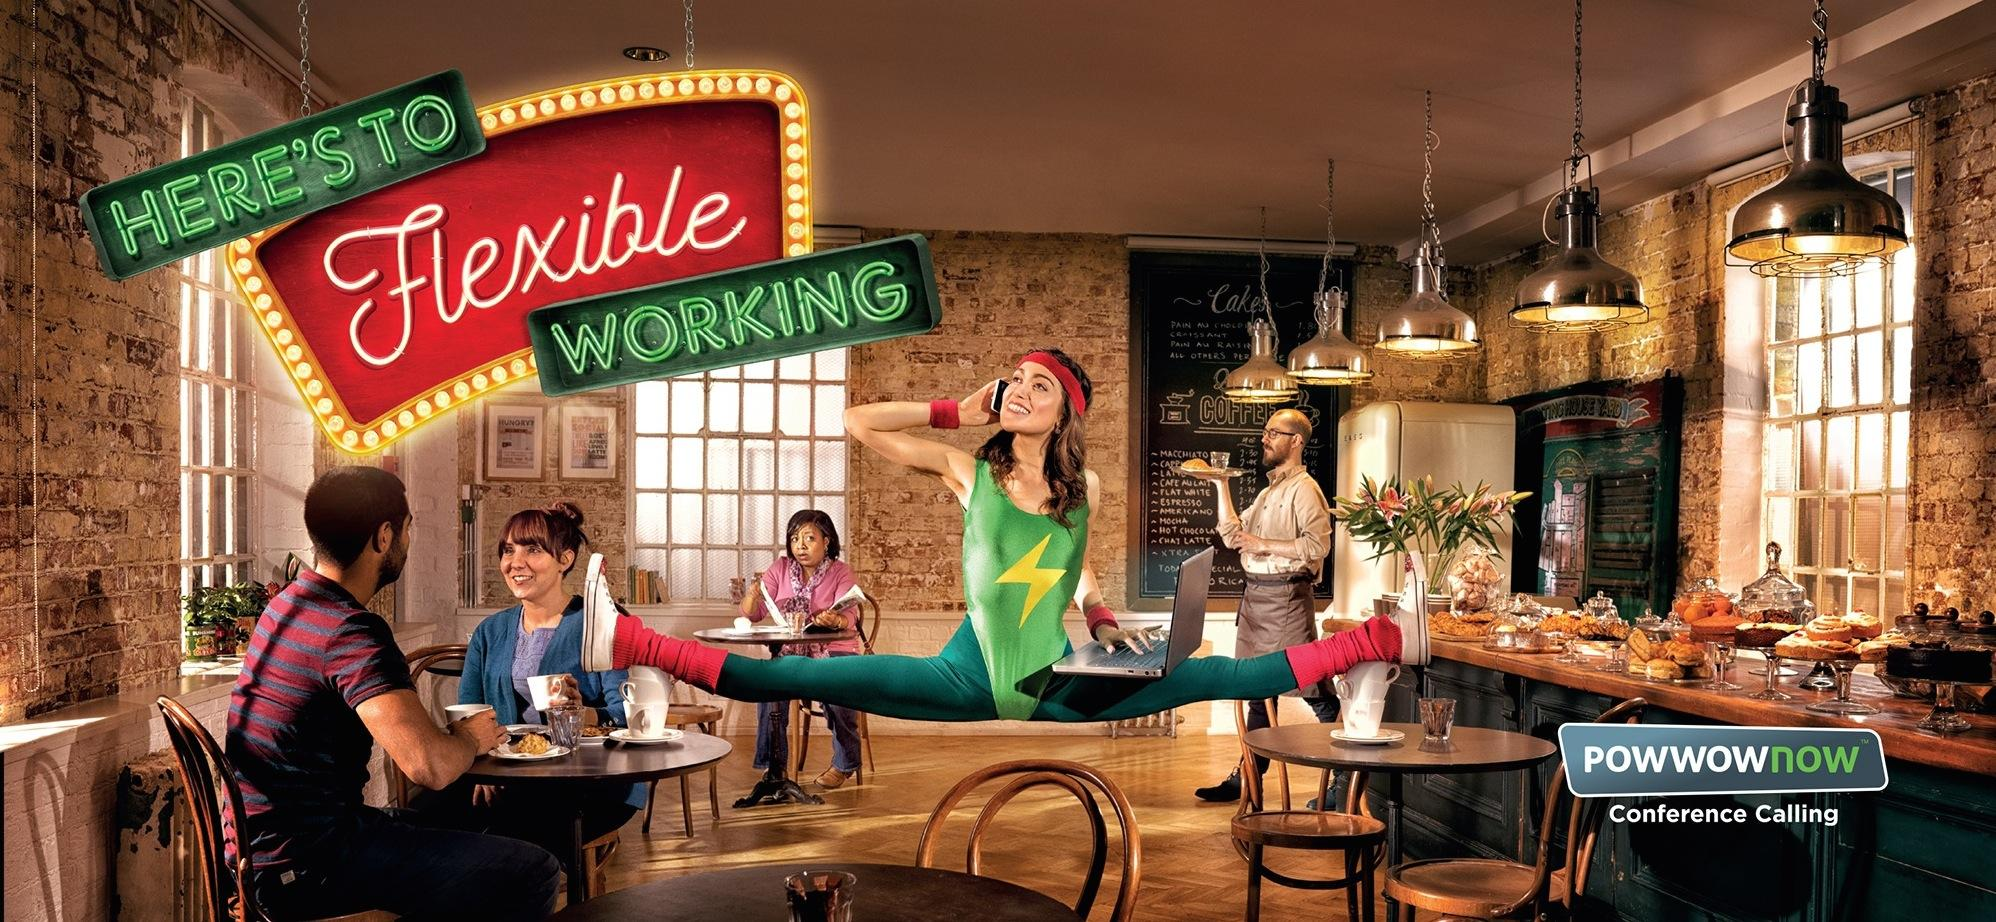 Powwownow Print Ad -  Here's to flexible working, 1